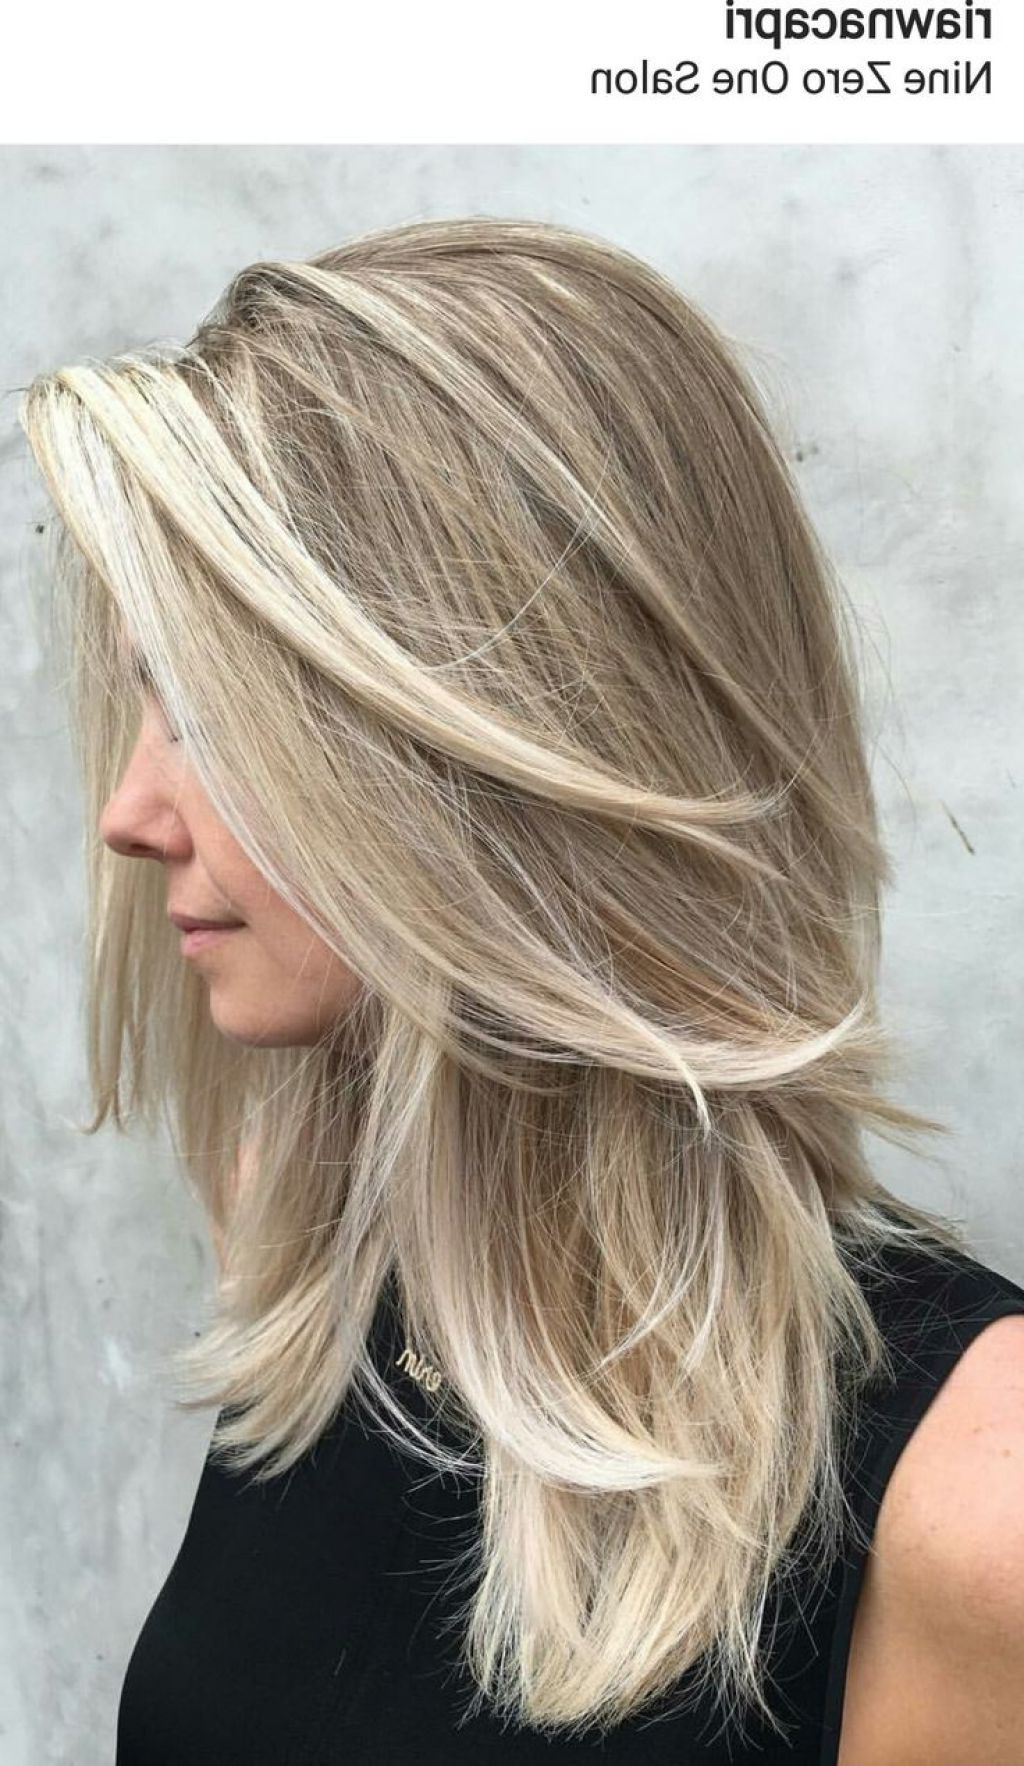 Favorite Swoopy Layers Hairstyles For Mid Length Hair Within Medium Hairstyle : Layered Hairstyles For Medium Length Hair With (View 5 of 20)